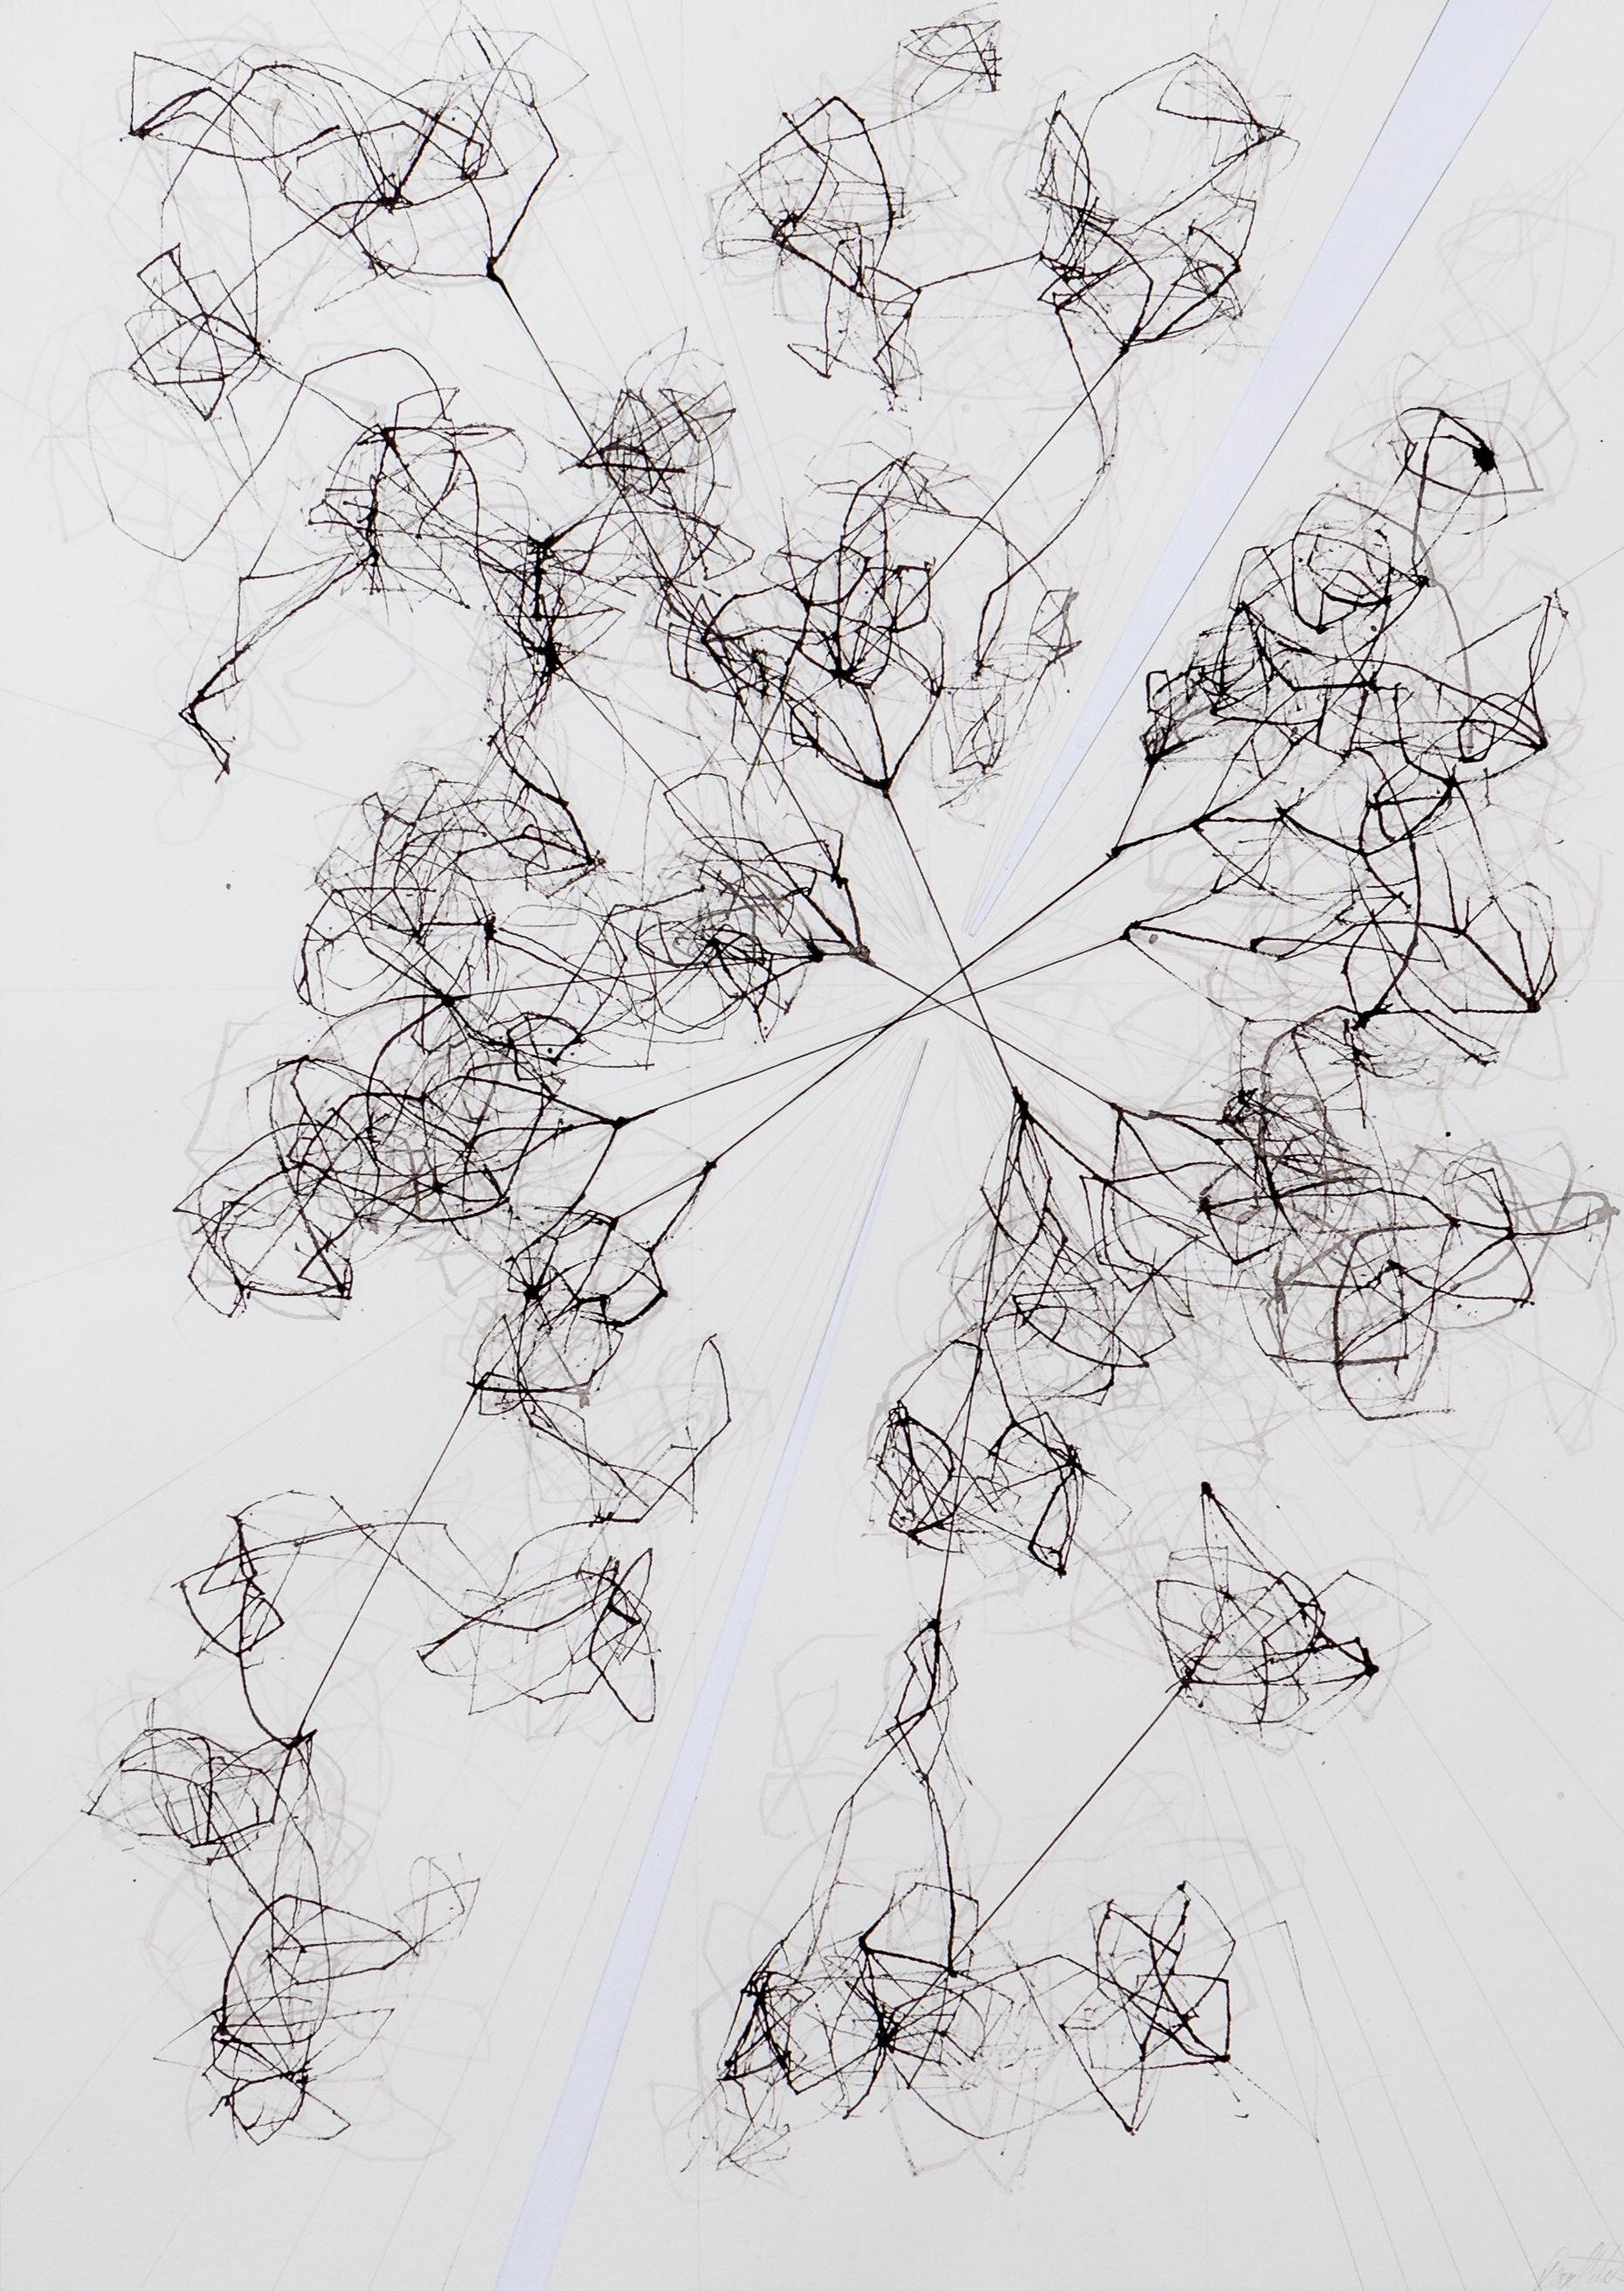 TAWI: Networks, Internet and Connections Drawing by David Watkins